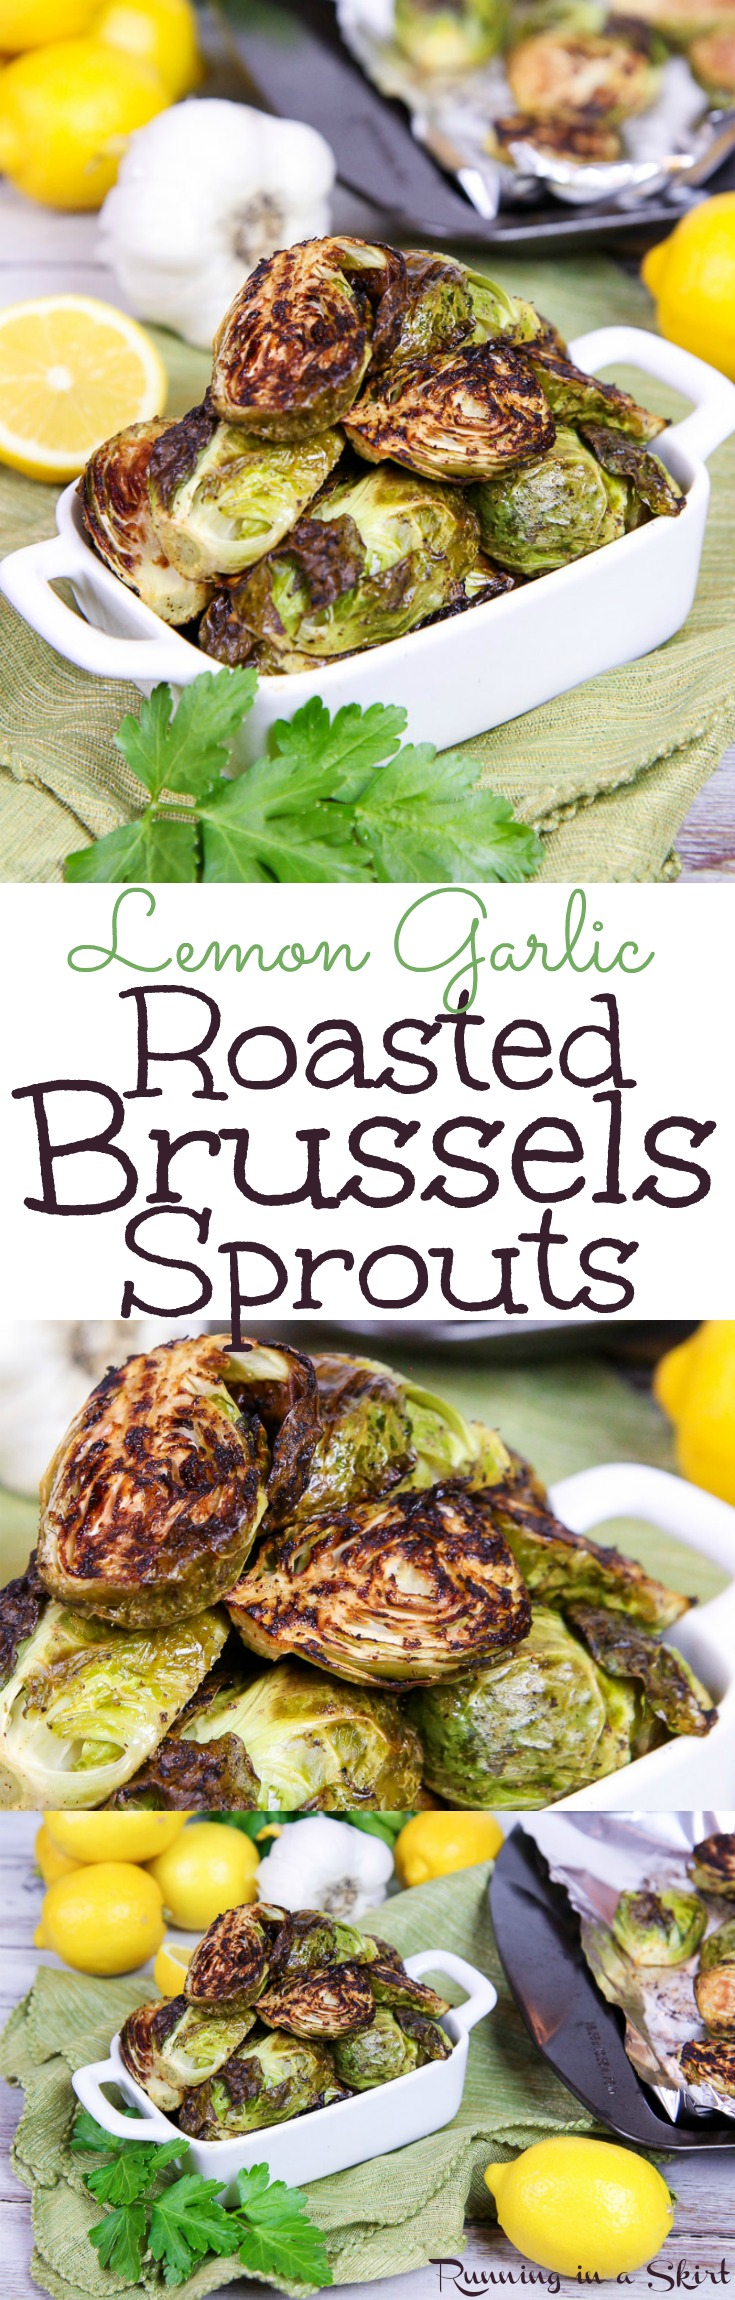 The Best Crispy Oven Roasted Brussels Sprouts with garlic recipe - seasoned with lemon - vegan friendly! These easy, healthy, quick and simple sprouts are the perfect veggies side dish with only a handful of ingredients. Also vegetarian, low carb, gluten free, 21 day fix, whole 30 and paleo. / Running in a Skirt via @juliewunder